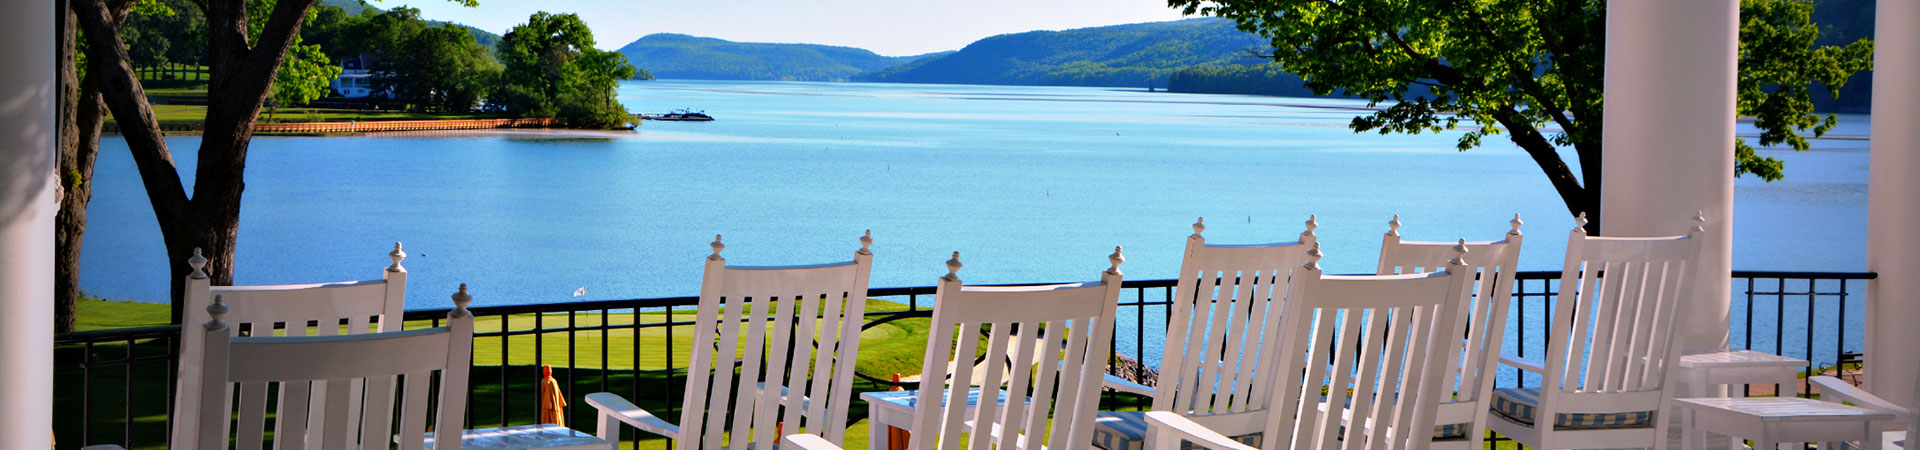 The Otesaga Resort Hotel Things to Know